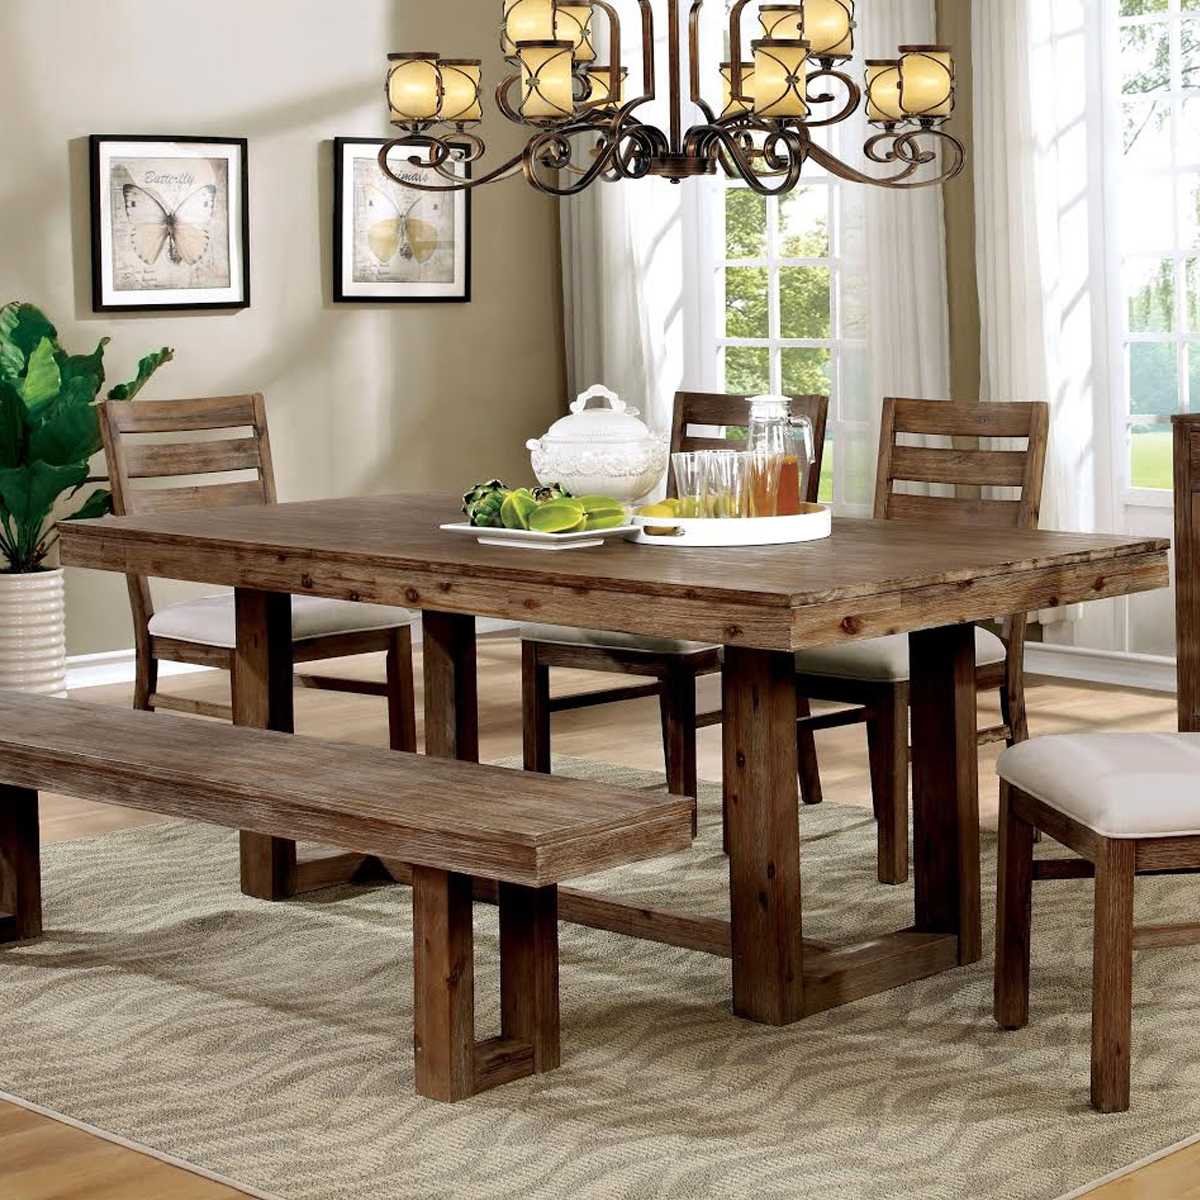 Country farmhouse plank-style dining table photo